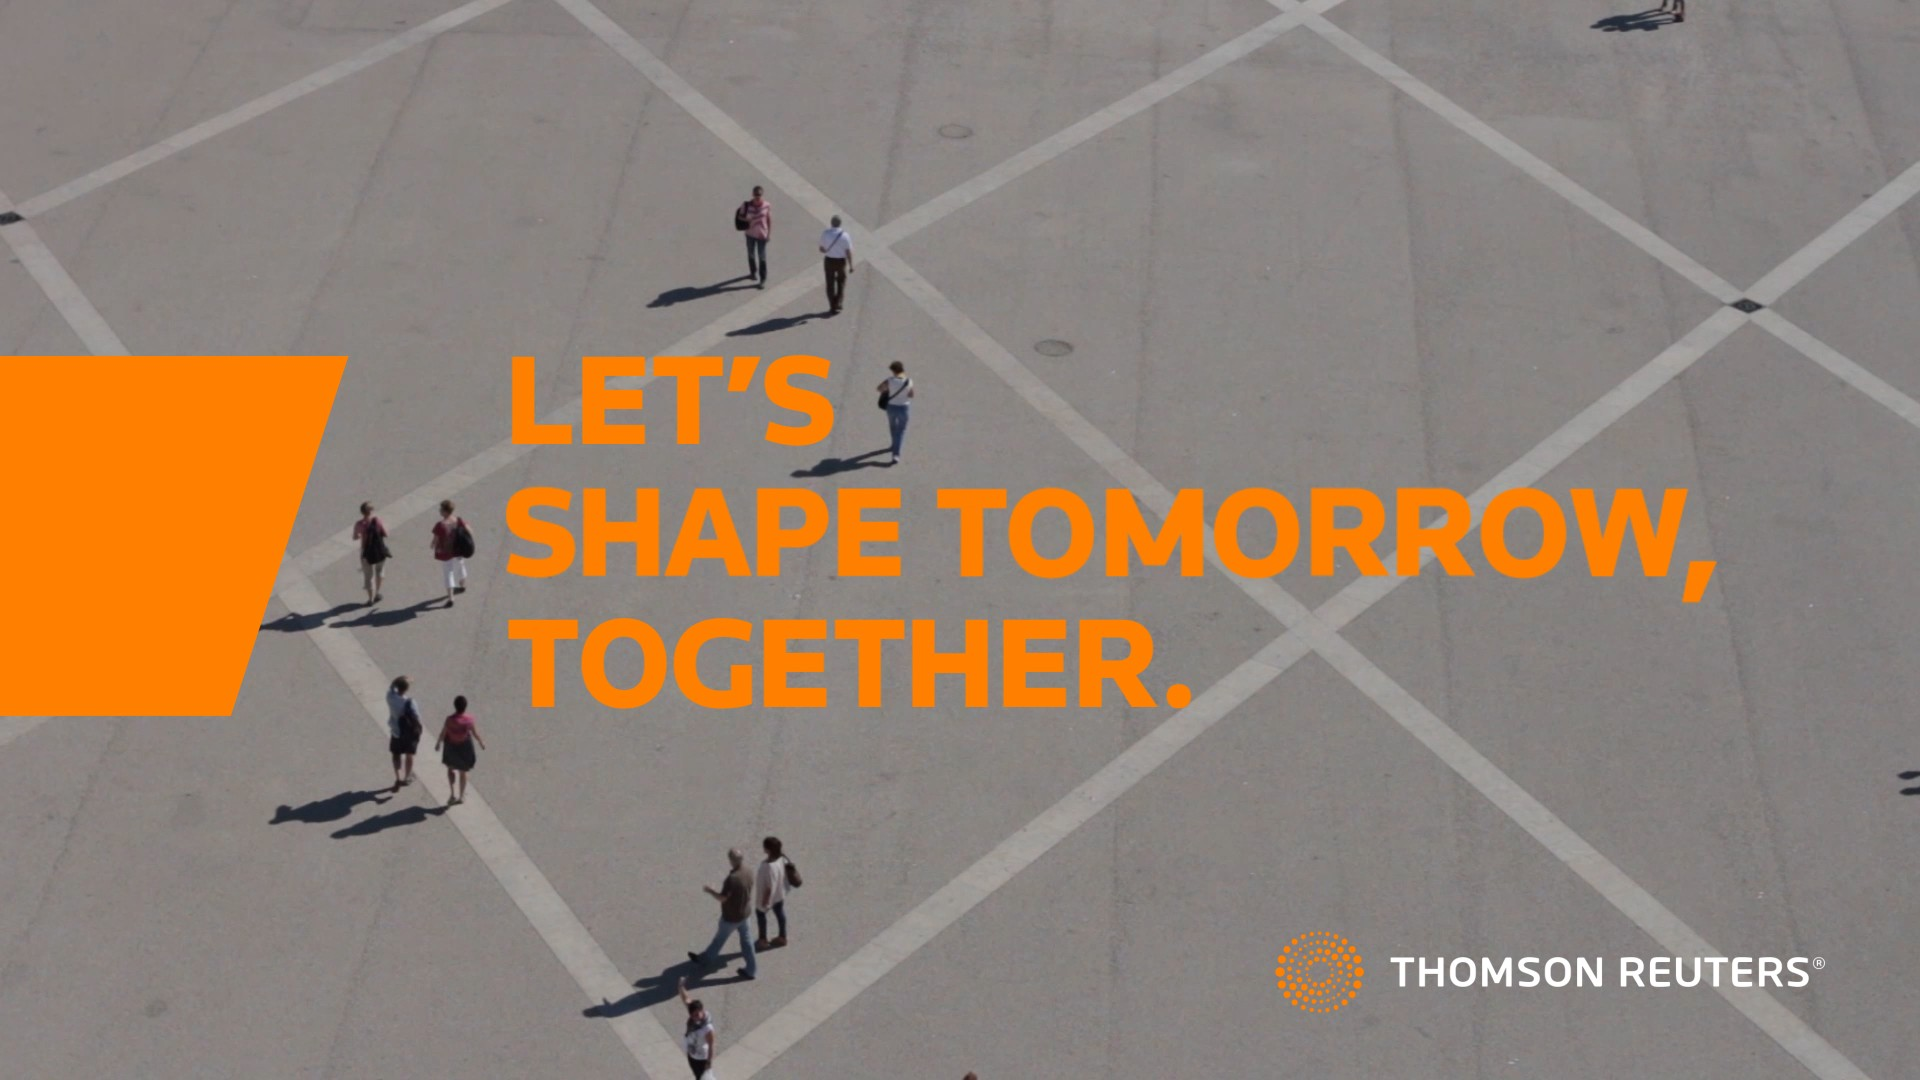 Let's shape tomorrow, together